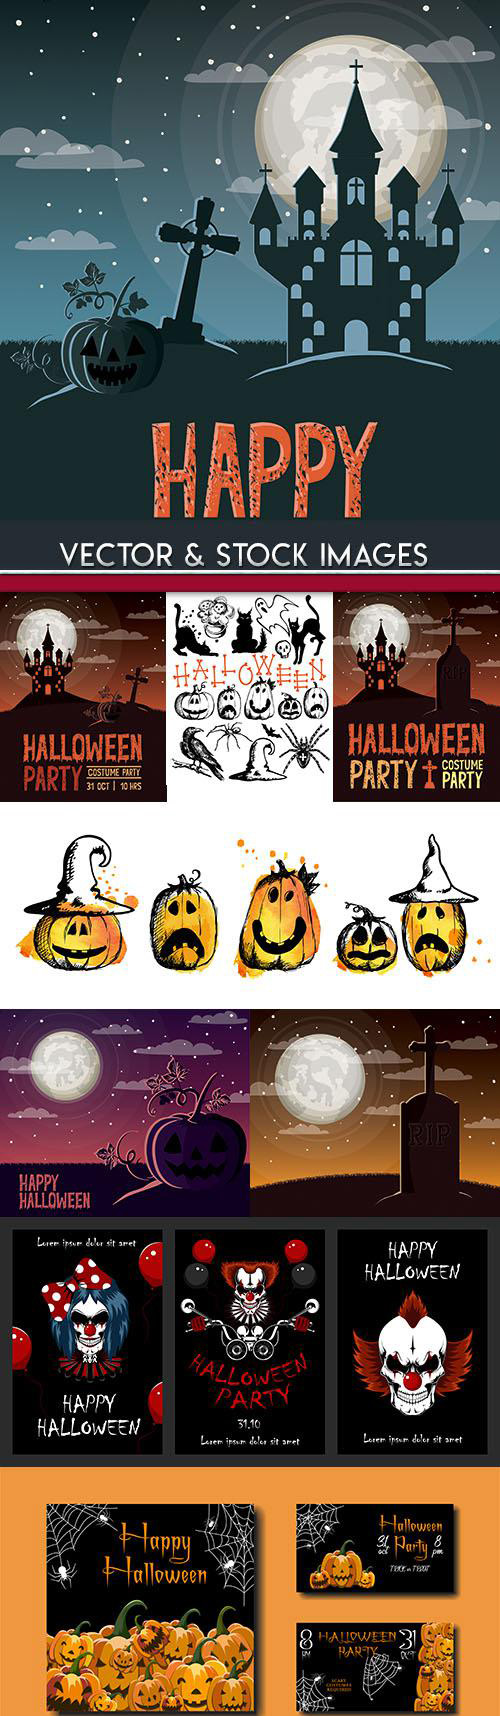 Happy Halloween holiday illustration collection 28